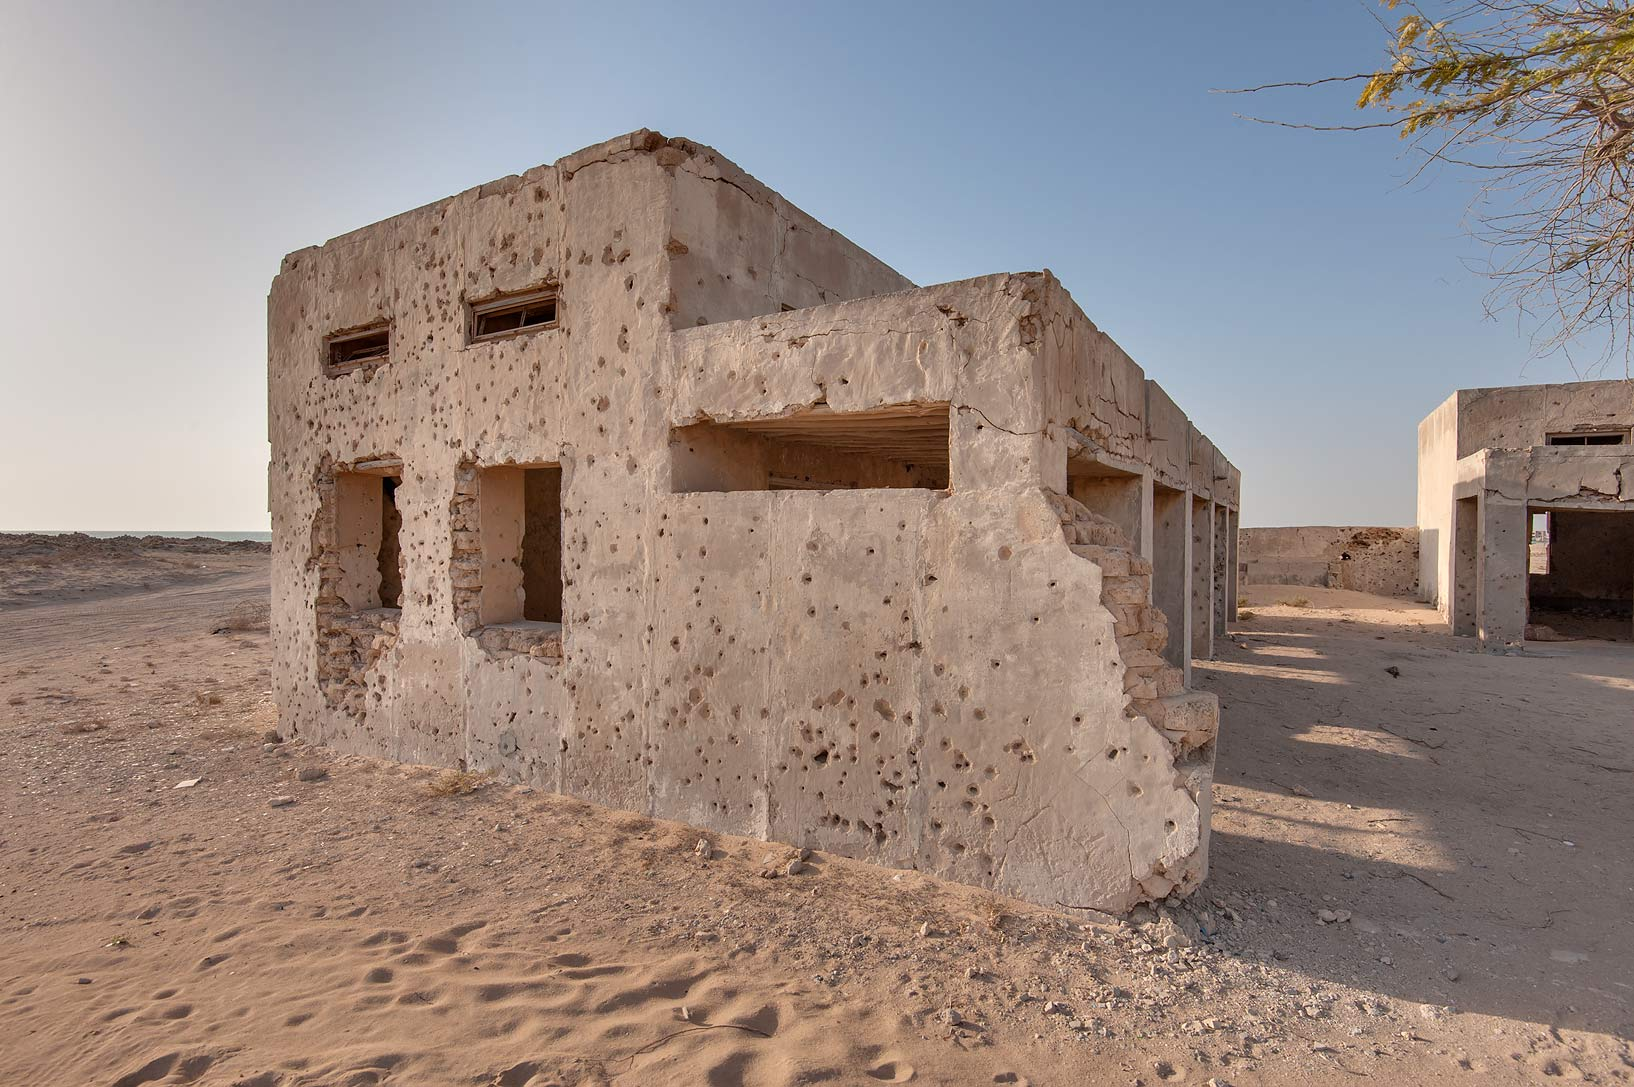 Ruins of a school in old fishing village (ghost...eastern coast, Ash Shamal area. Qatar